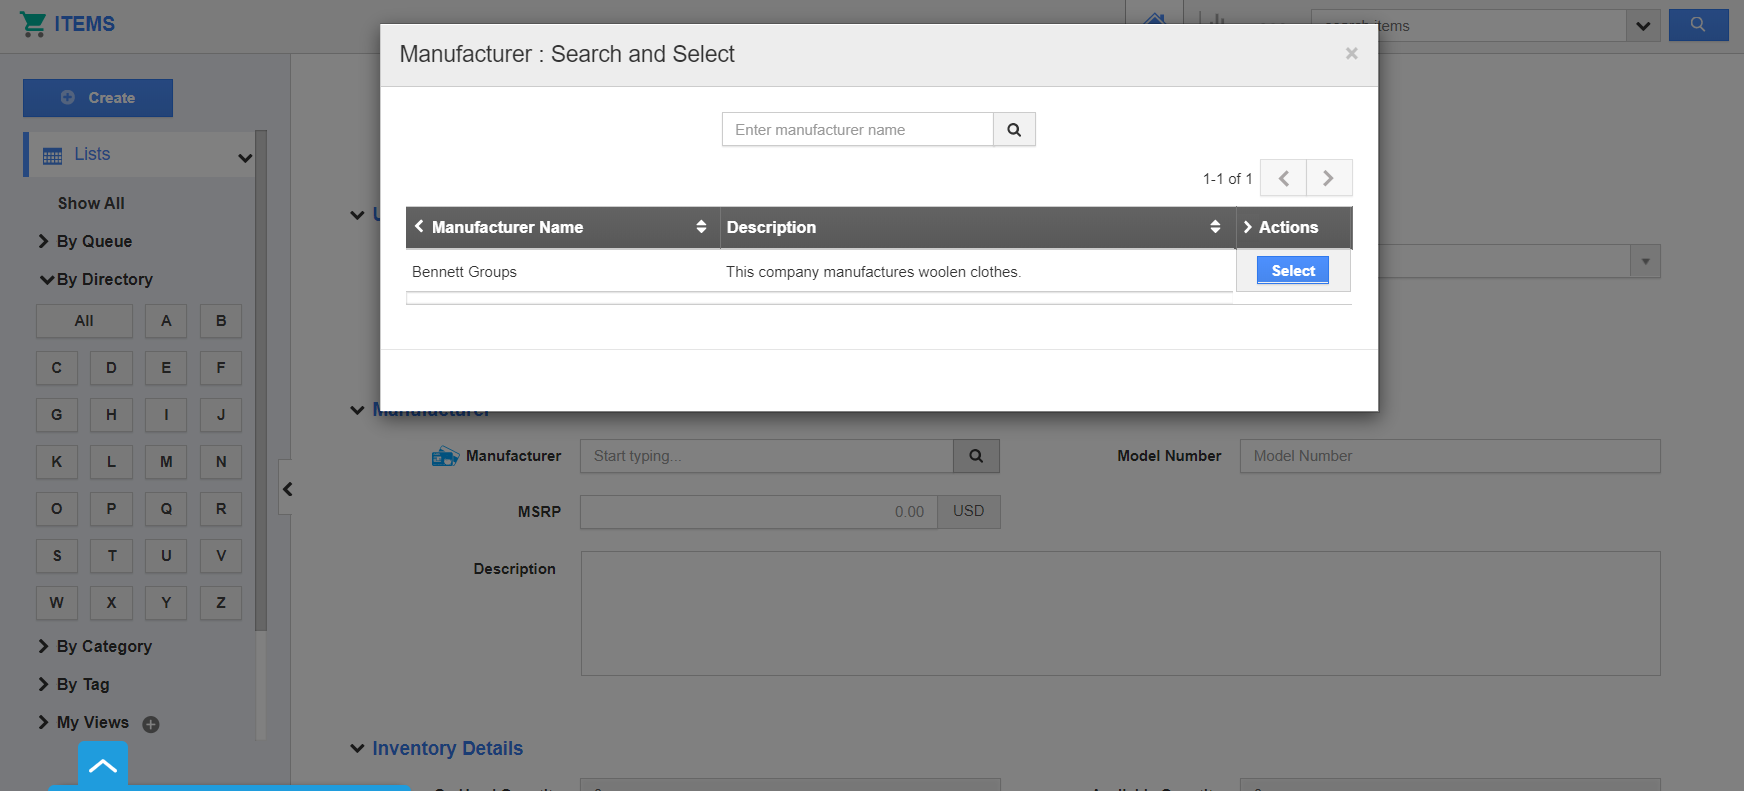 Manufacturer Search and Select